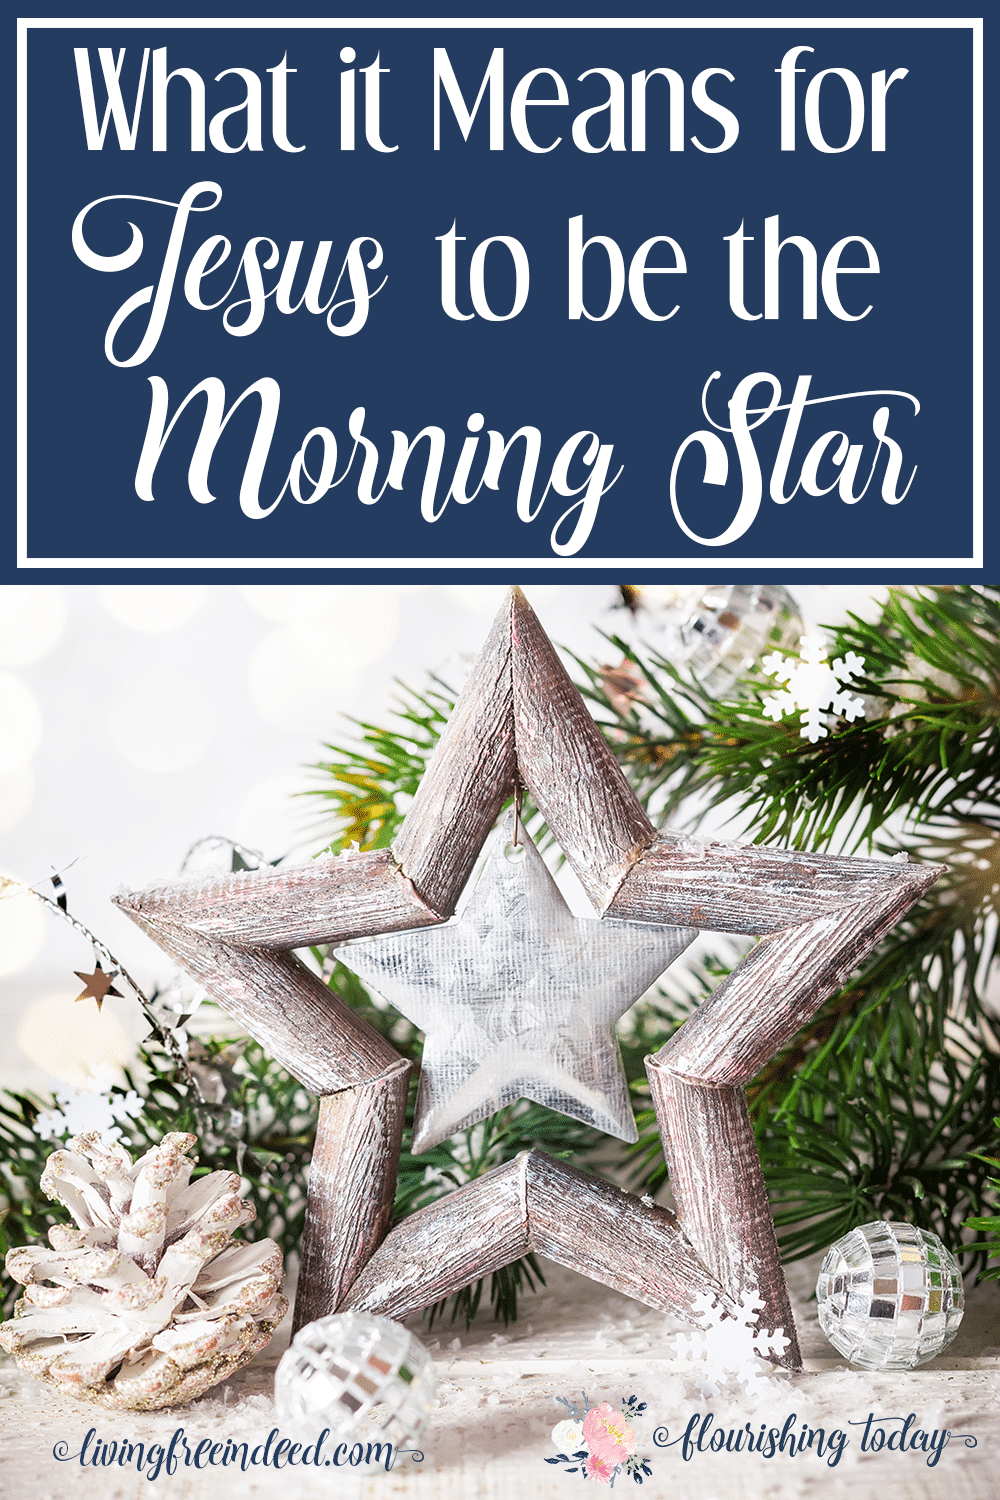 What does it mean for Jesus to be the Morning Star? Join us as we search the scriptures for the Names of Jesus this Christmas.